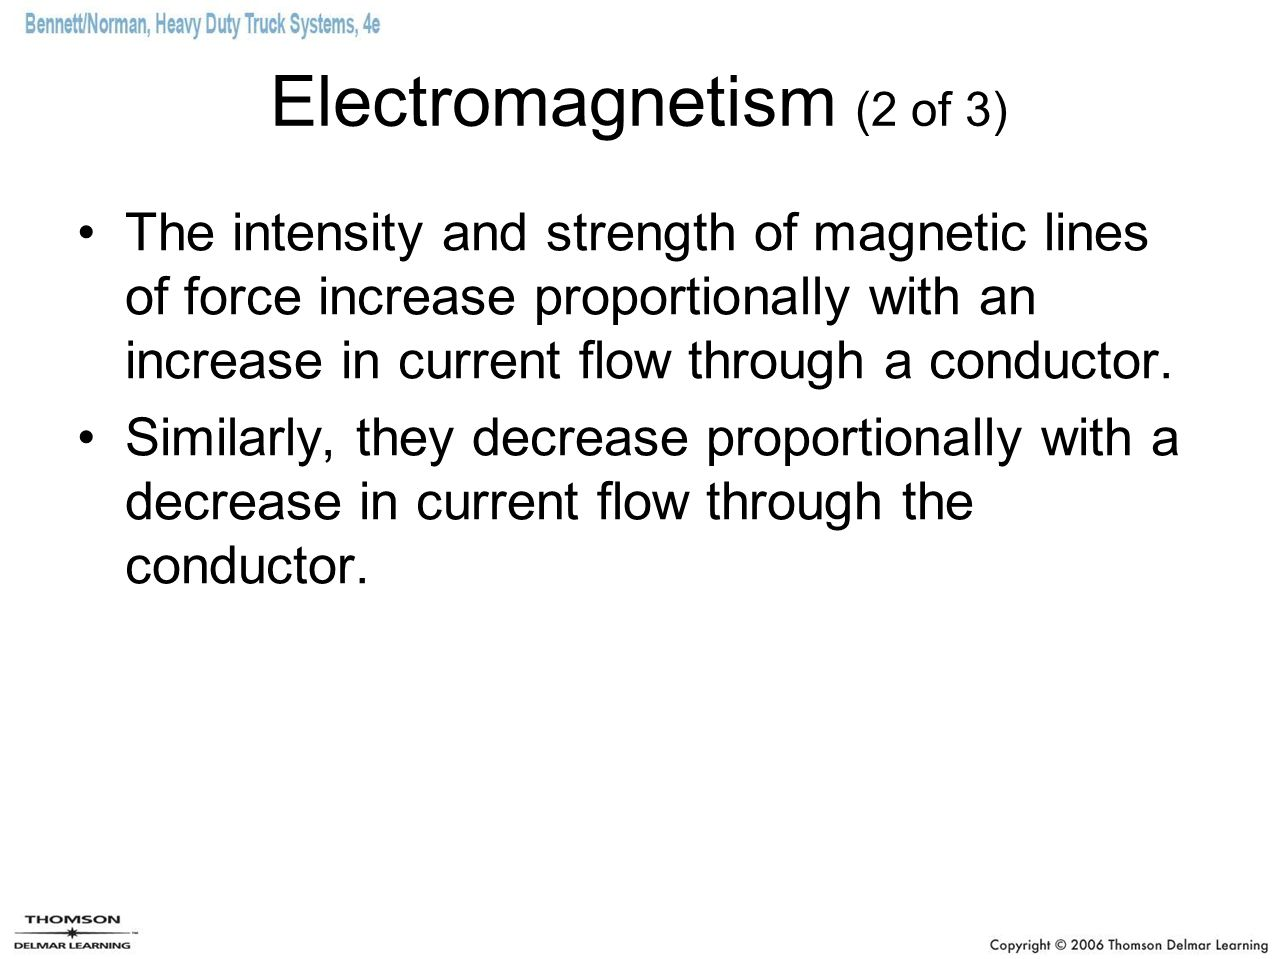 Electromagnetism (2 of 3)